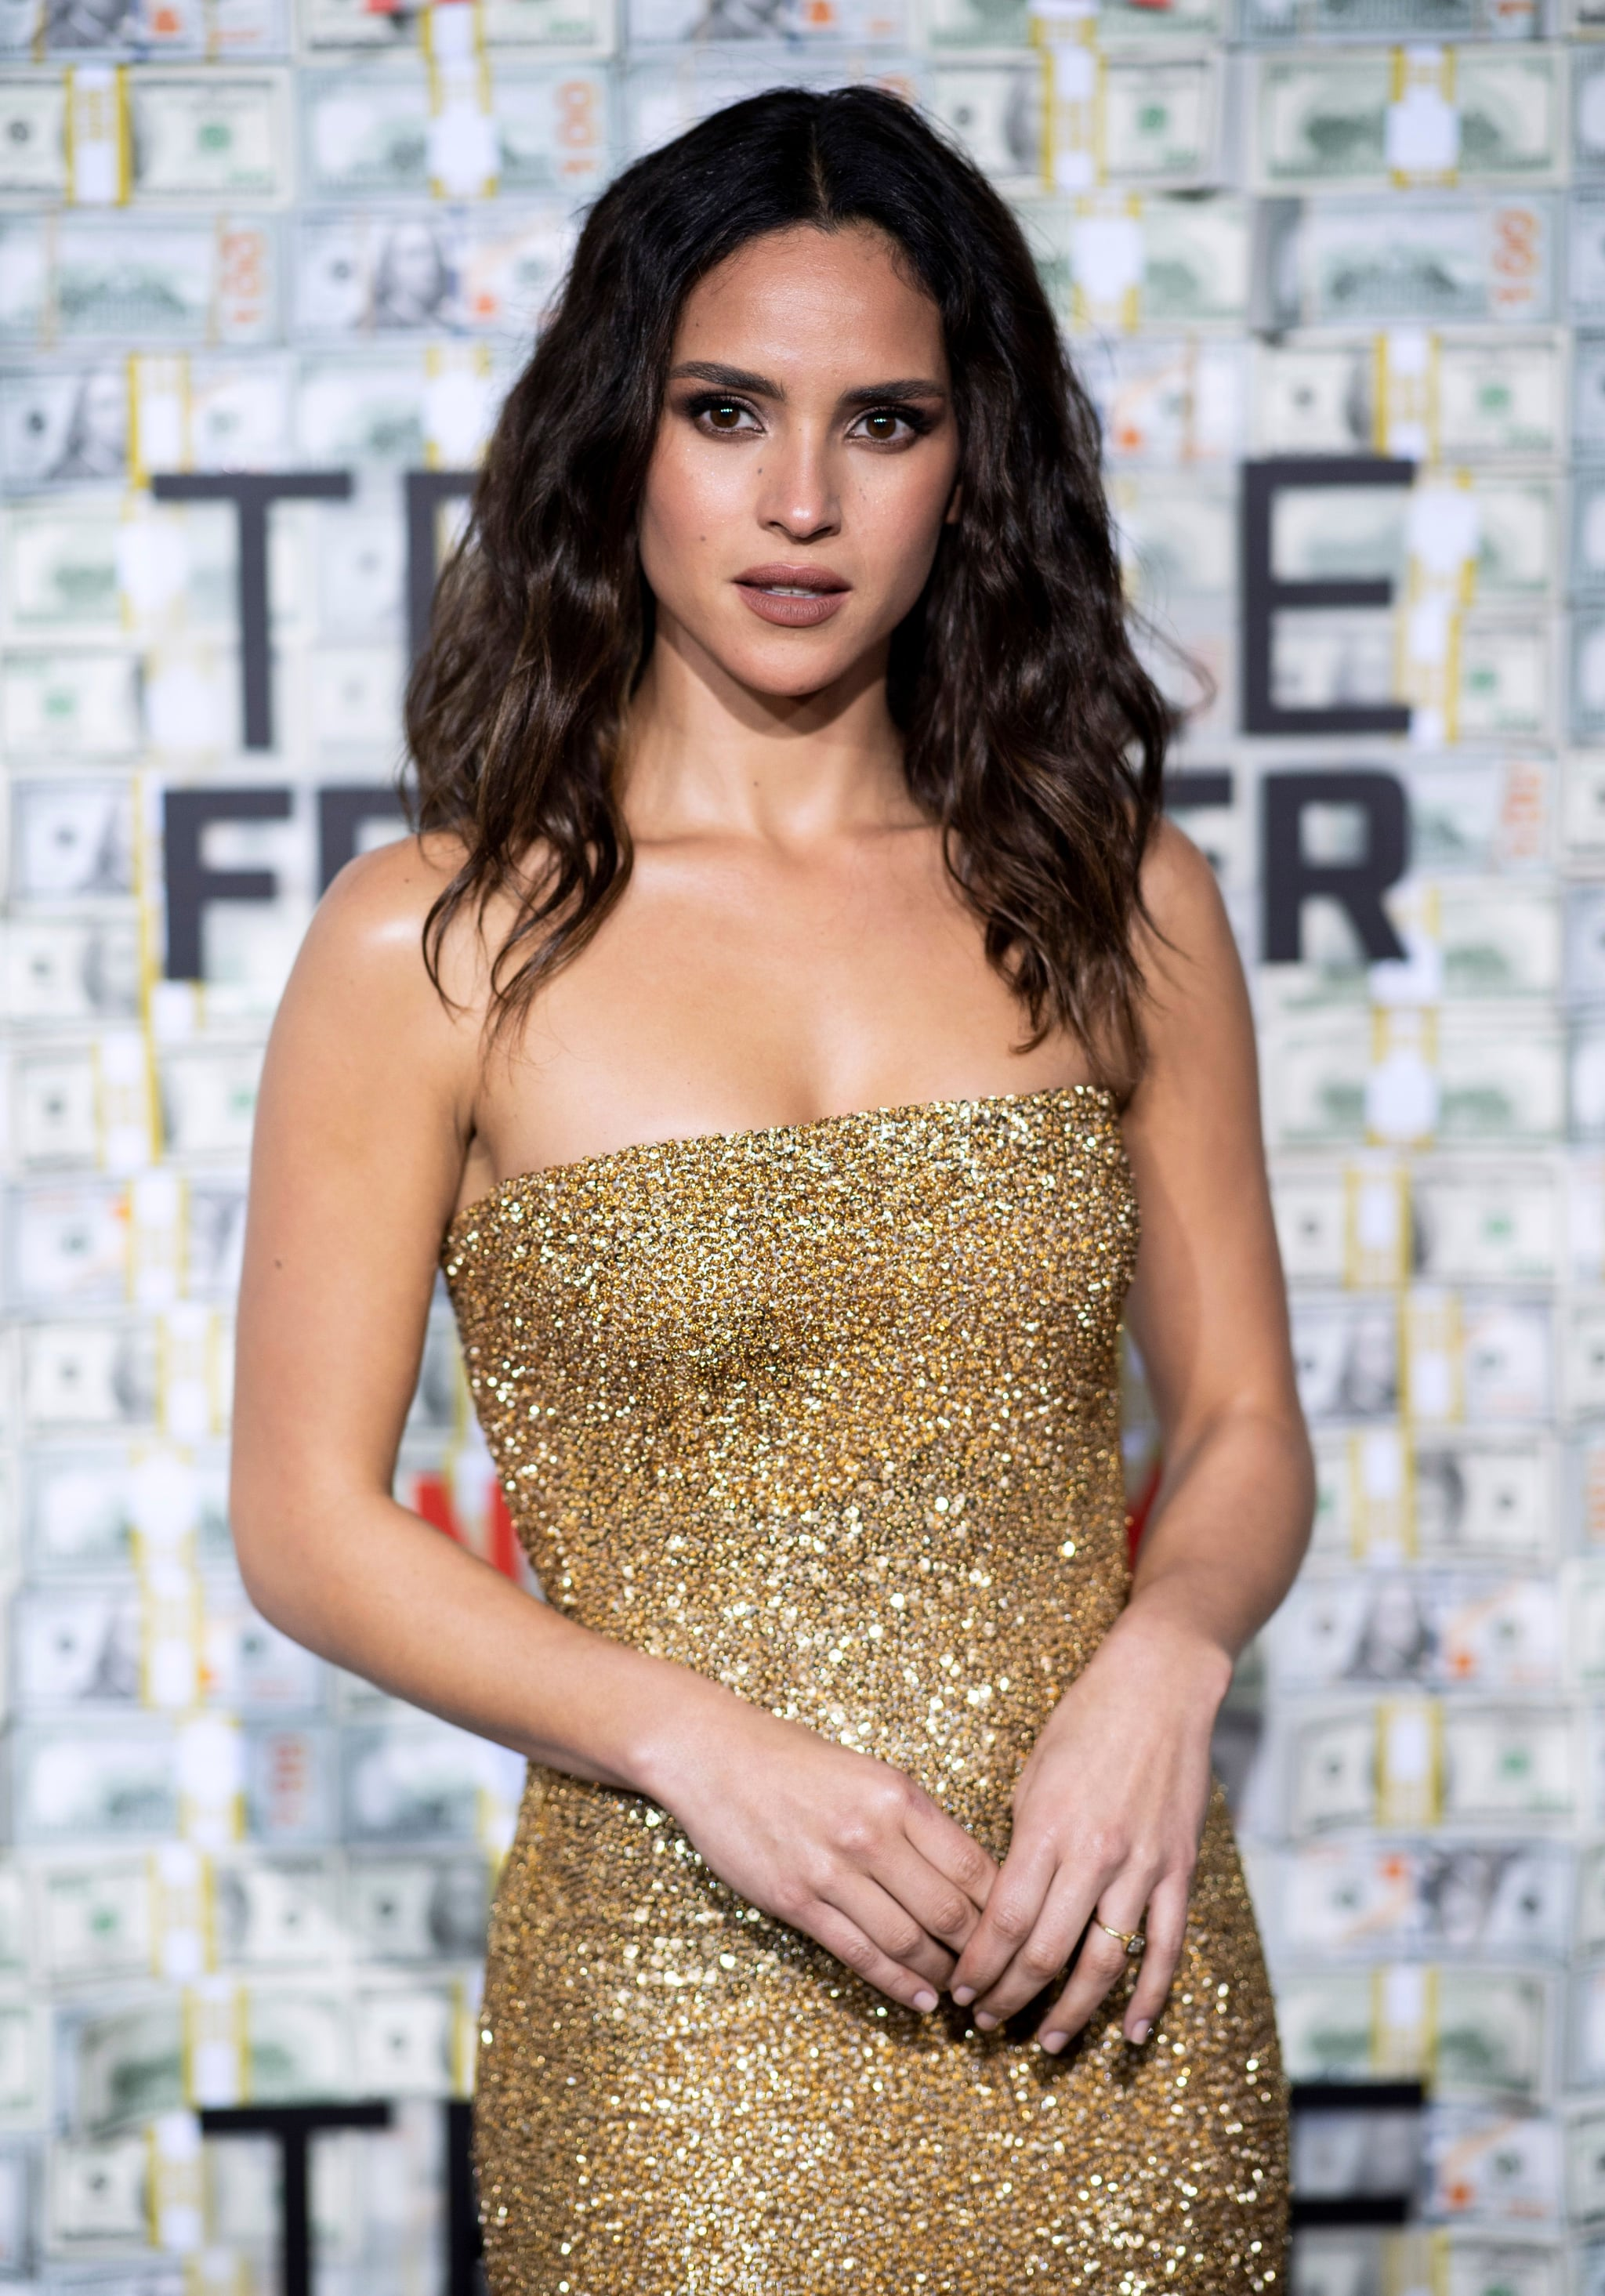 Pictured: Adria Arjona | I'm Curious, What's Ben Affleck Whispering to Charlie Hunnam at the Triple Frontier Premiere? | POPSUGAR Celebrity Photo 12